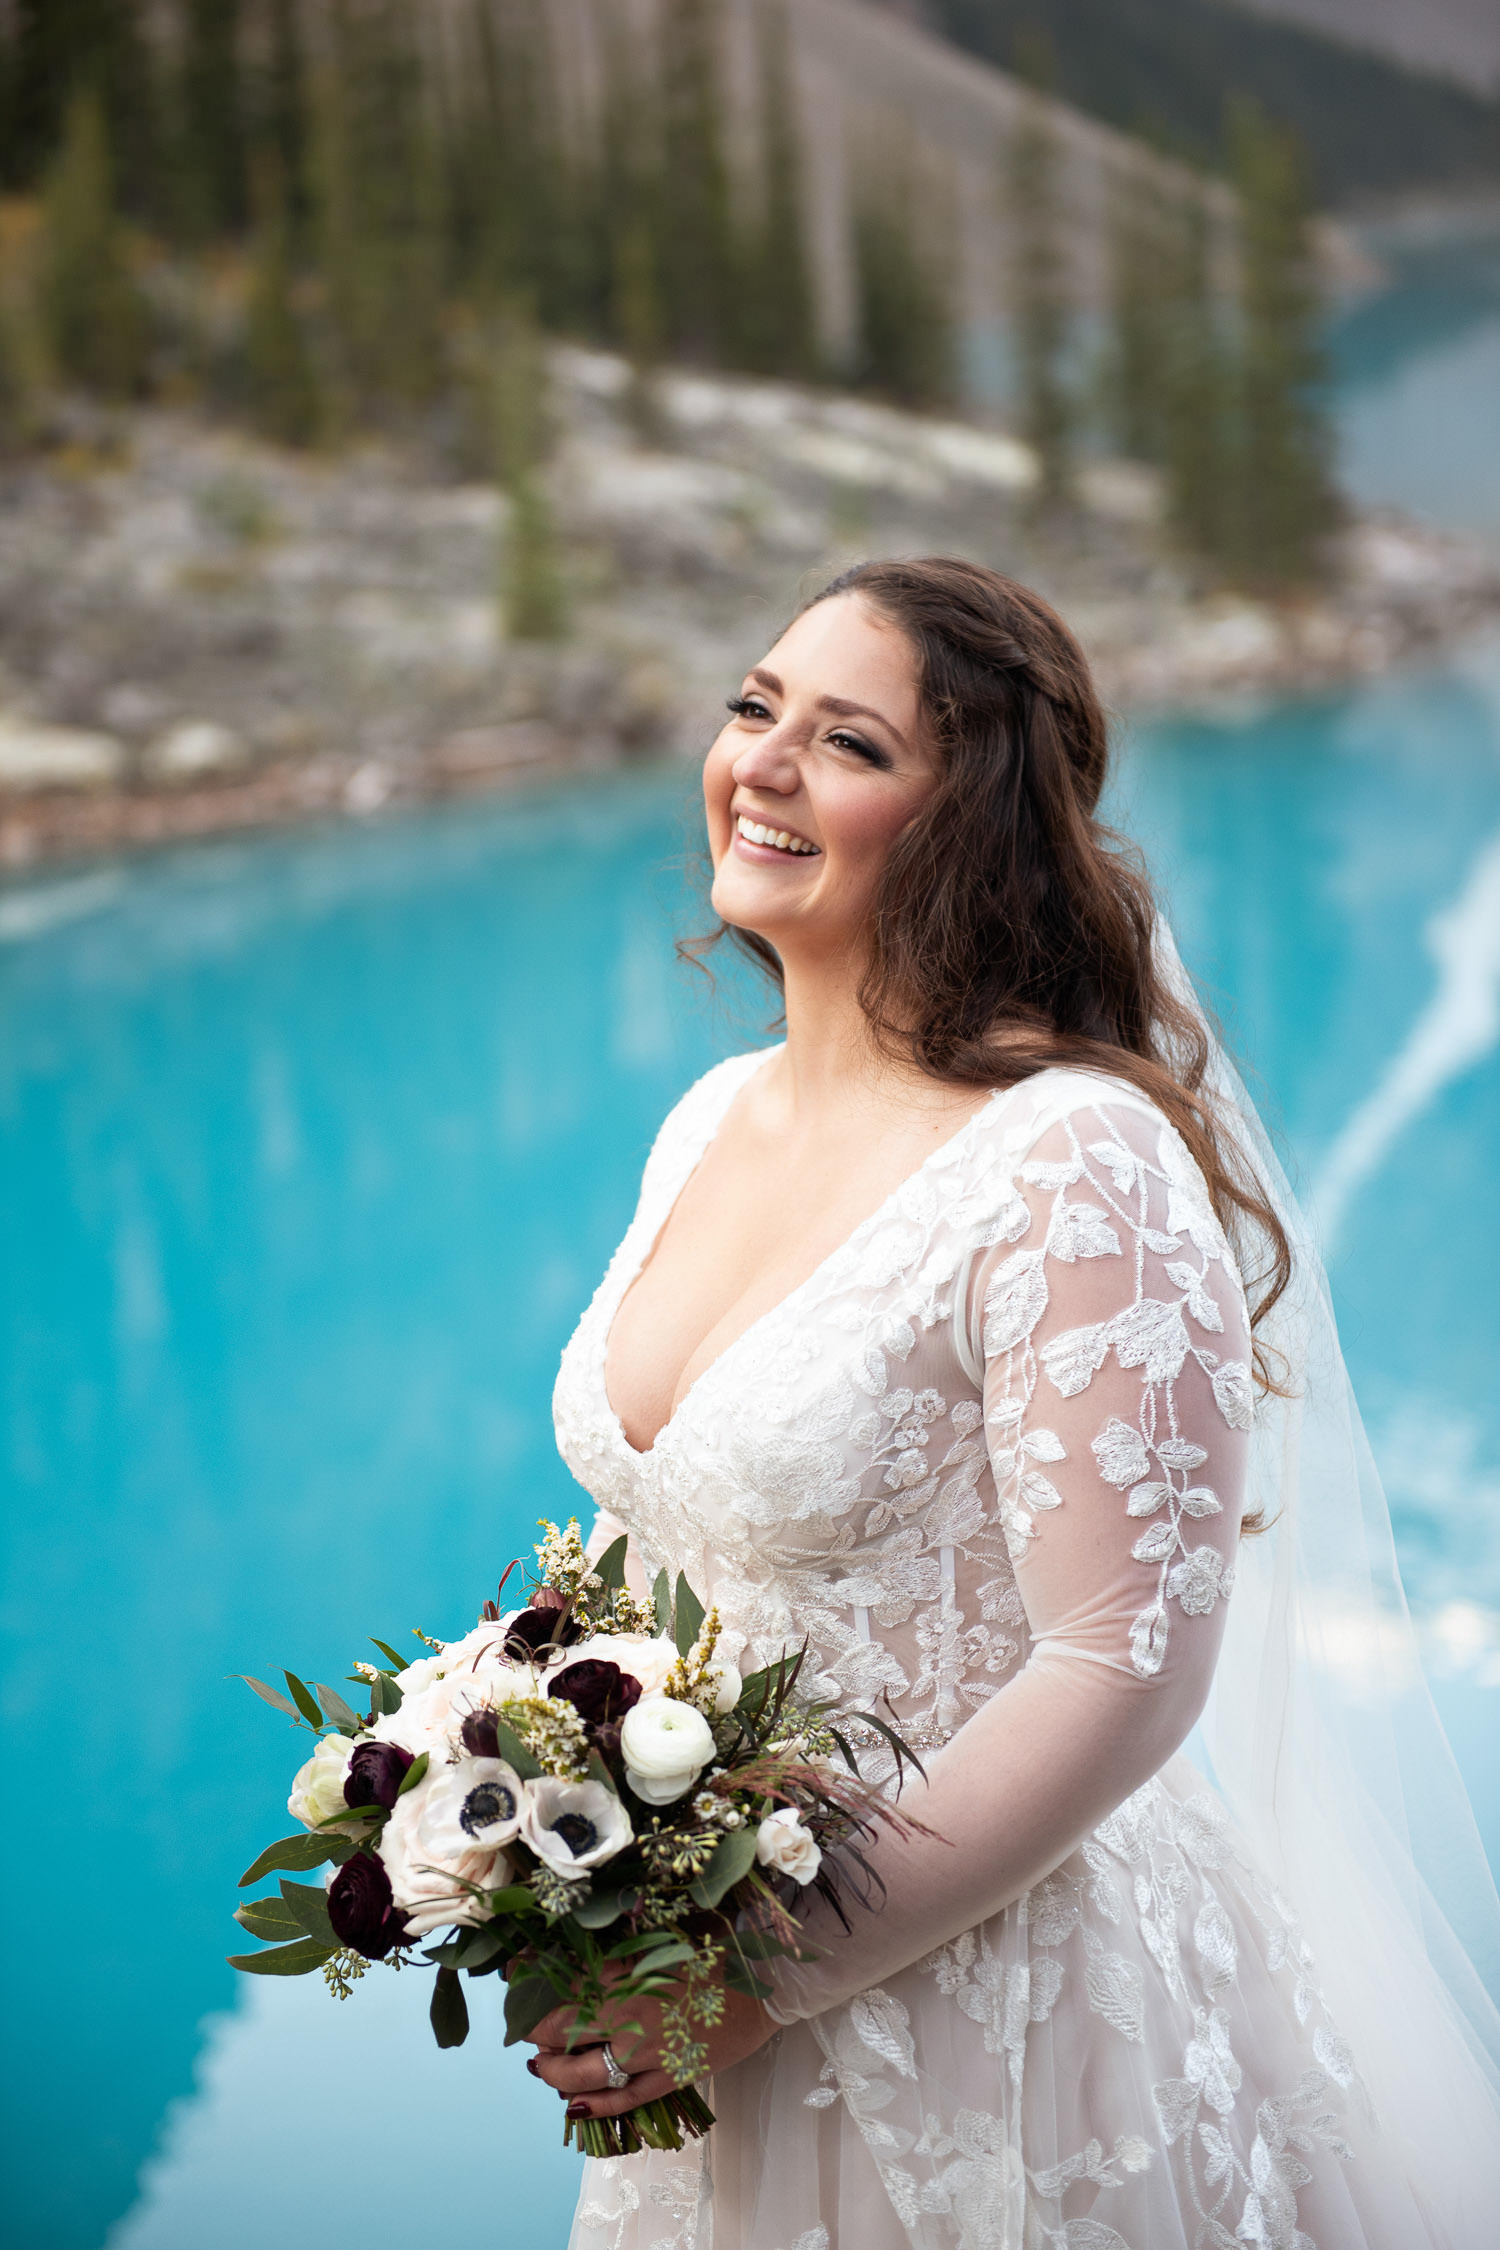 Bride with her bouquet from Flowers by Janie at Moraine Lake